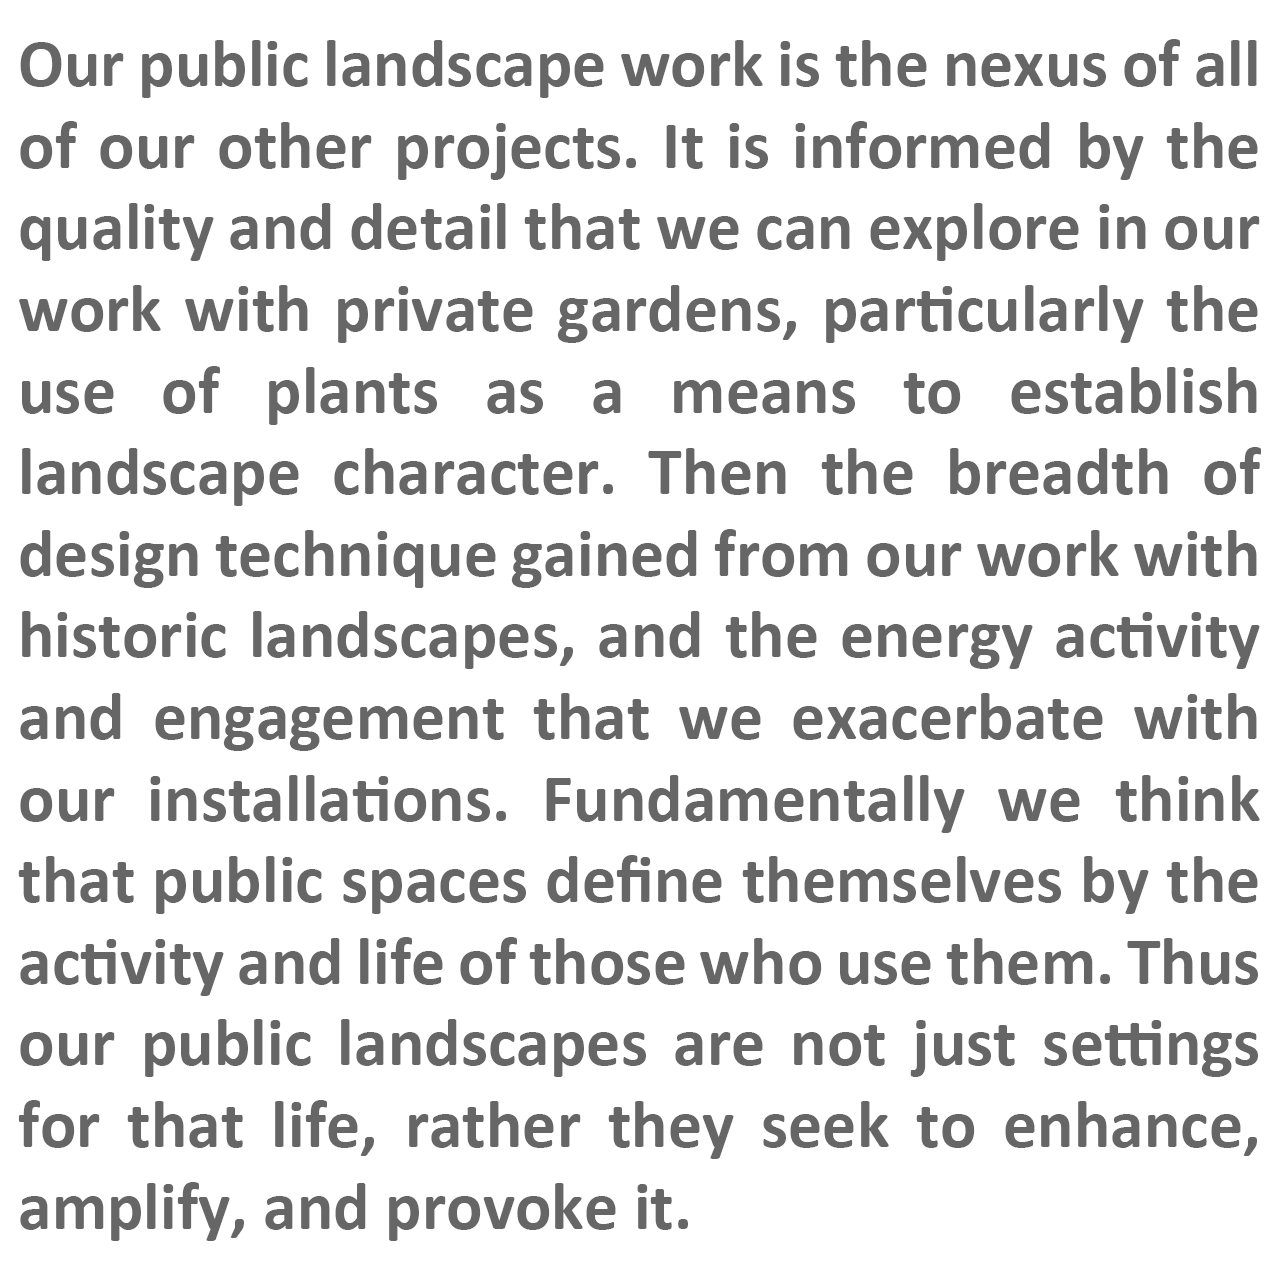 FFLO text describing our approach to public landscapes